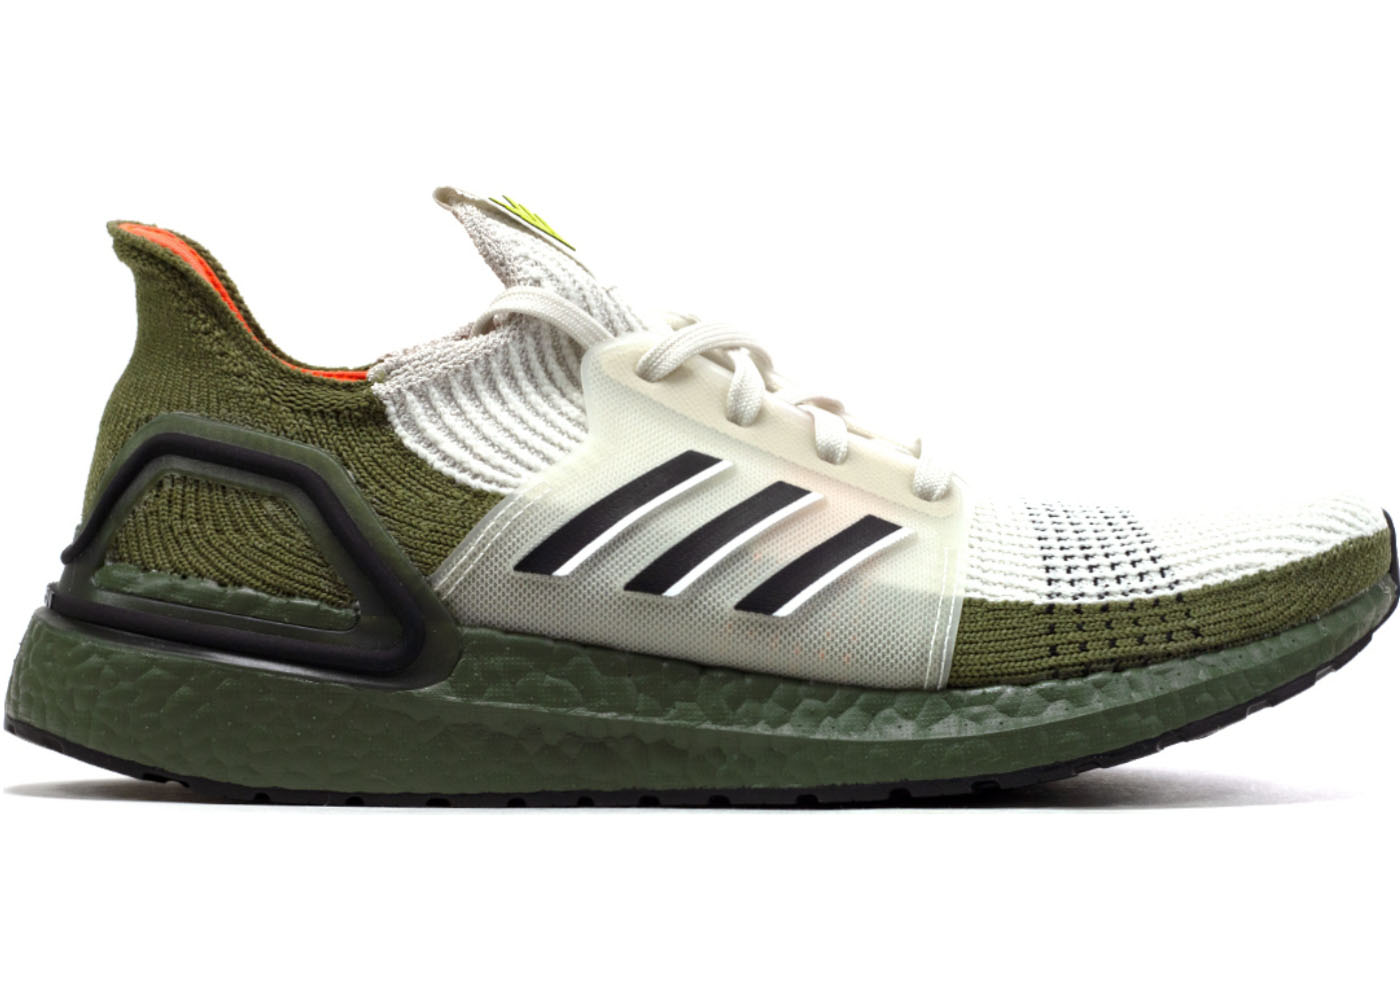 adidas Ultra Boost Size 9 Shoes Release Date